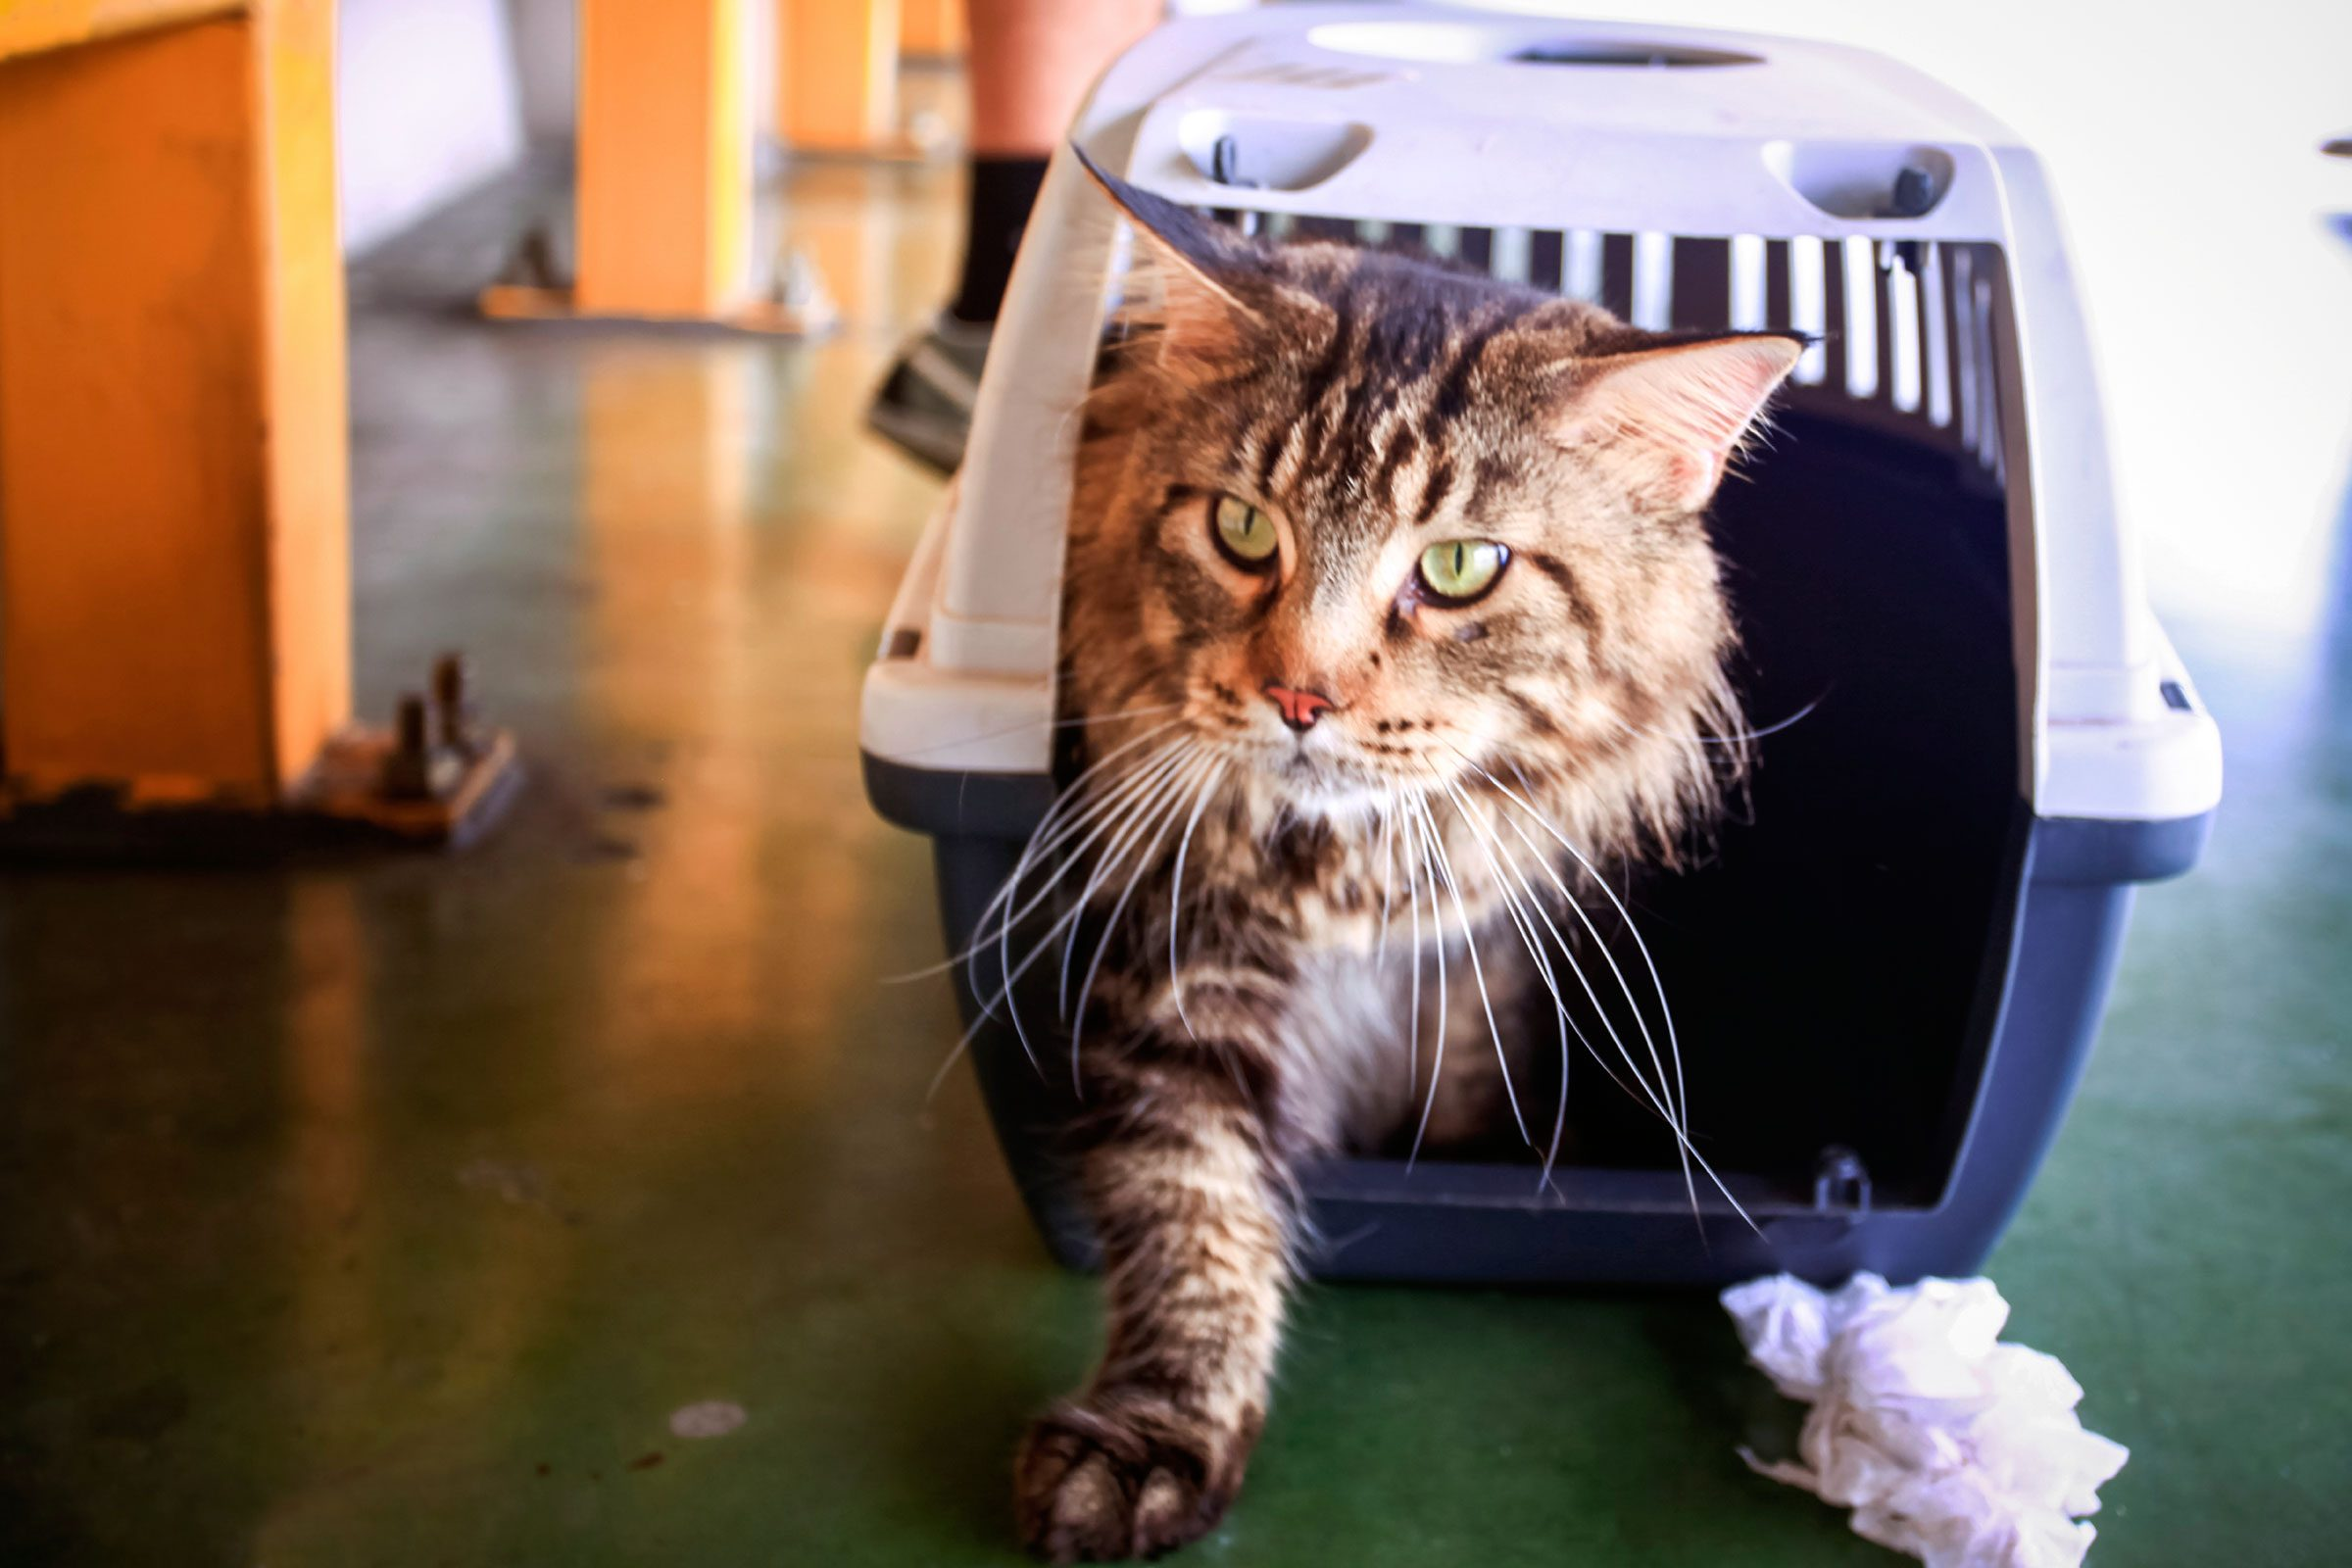 Take your cat to the vet in a plastic cat carrier with a removable top